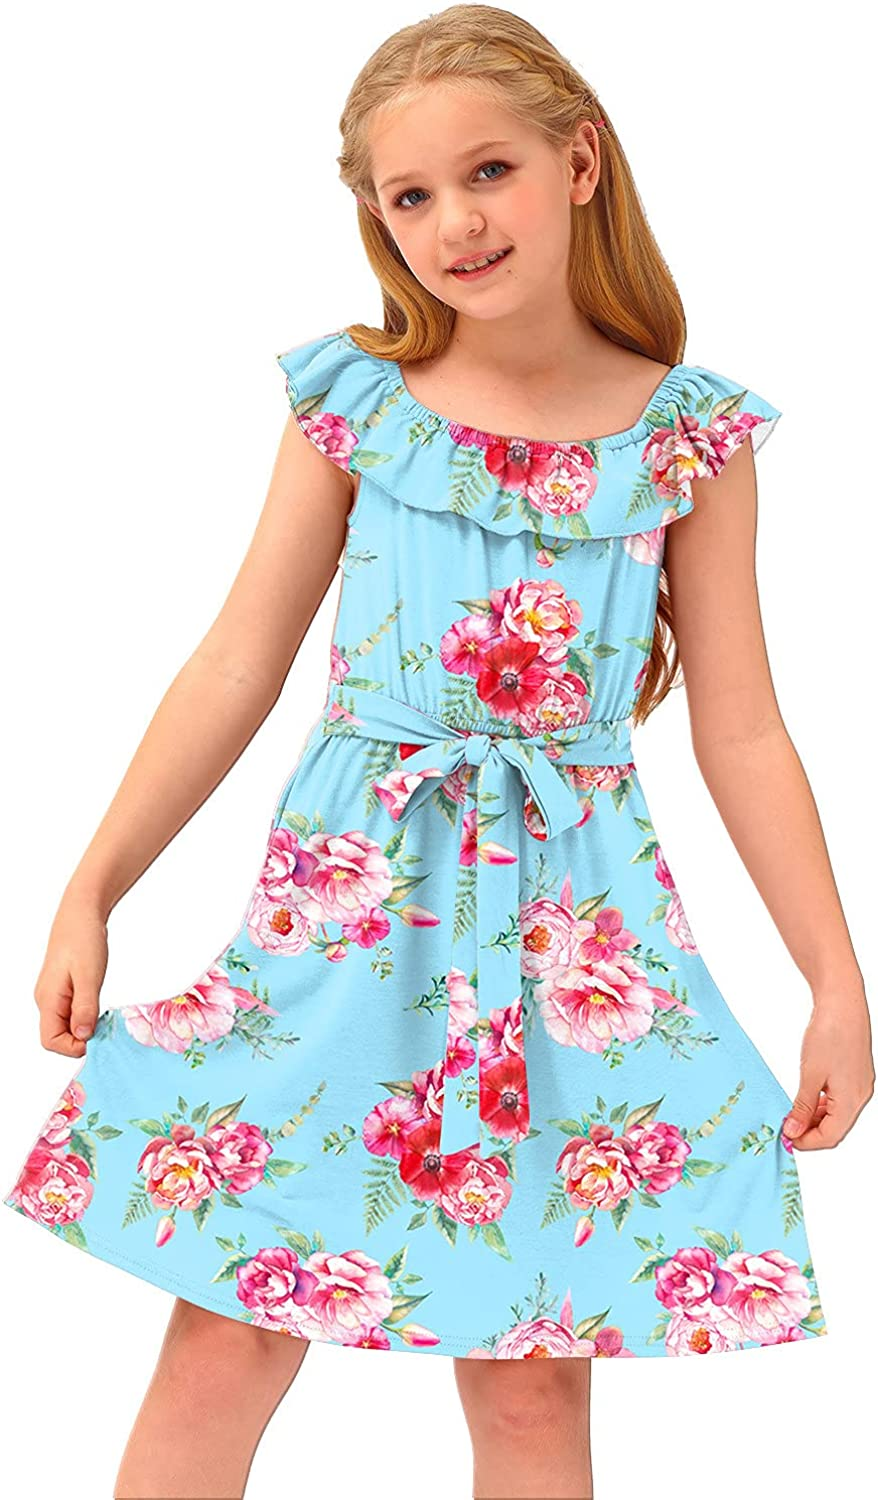 BesserBay Girl's Casual Ruffle Elastic Neckline Off Shoulder Floral Midi Dress 3-12 Years